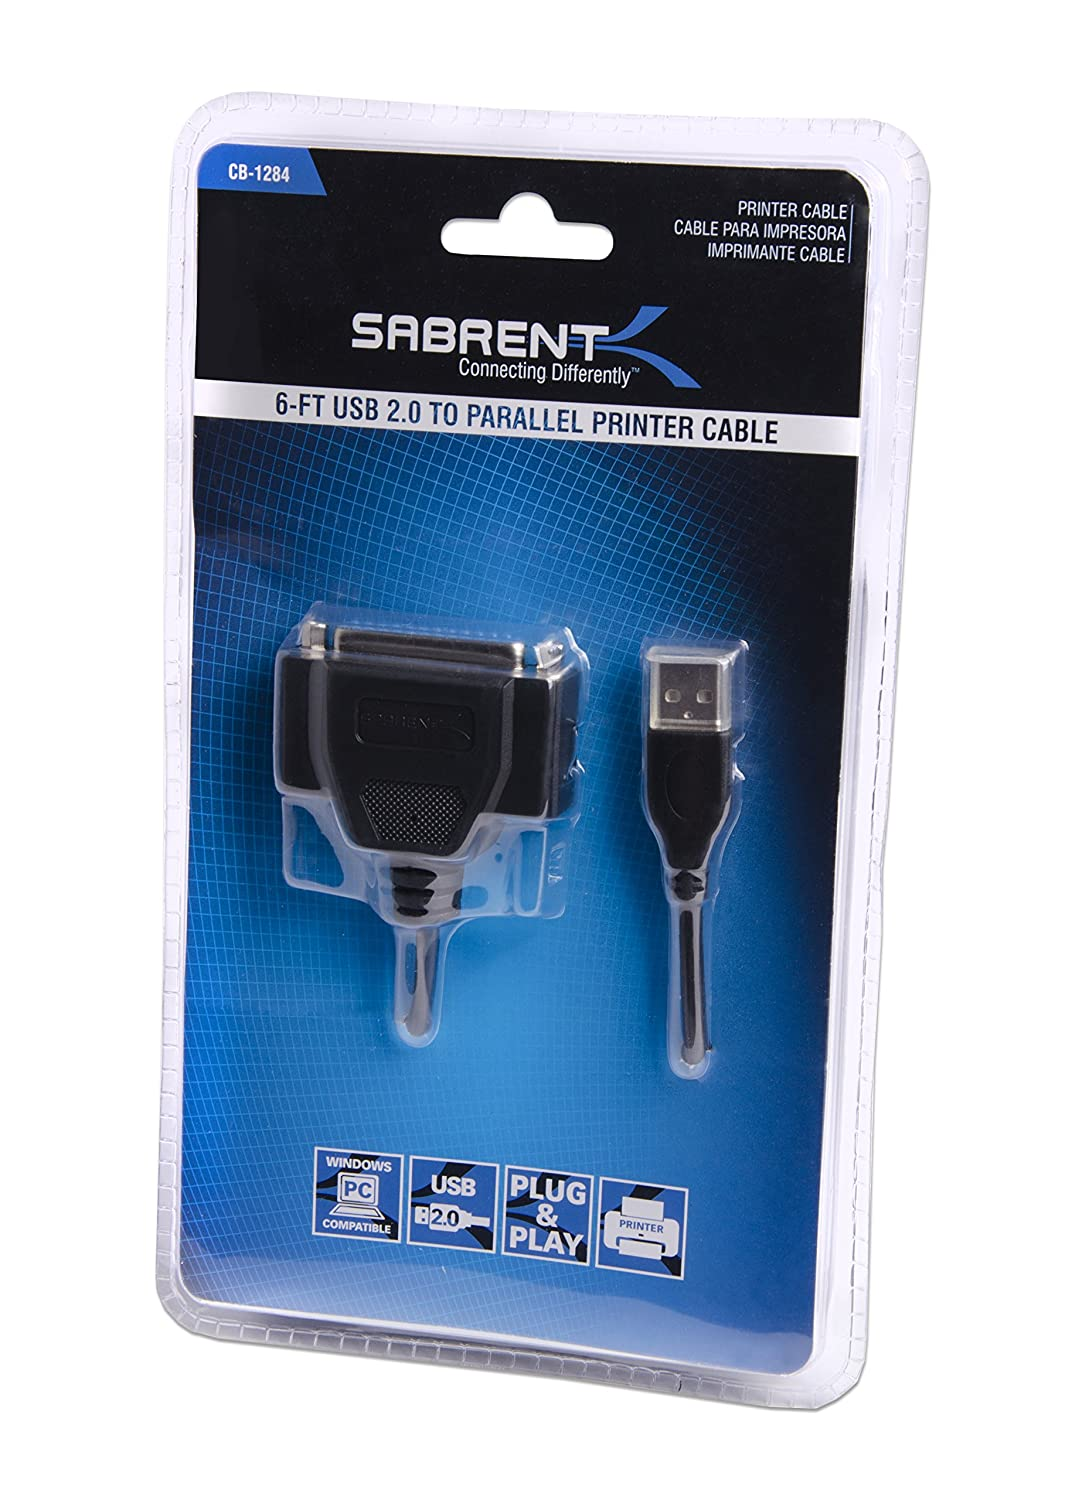 Sabrent USB 2.0 to DB25 IEEE-1284 Parallel Printer Cable Adapter CB-1284 HEXNUT Connectors